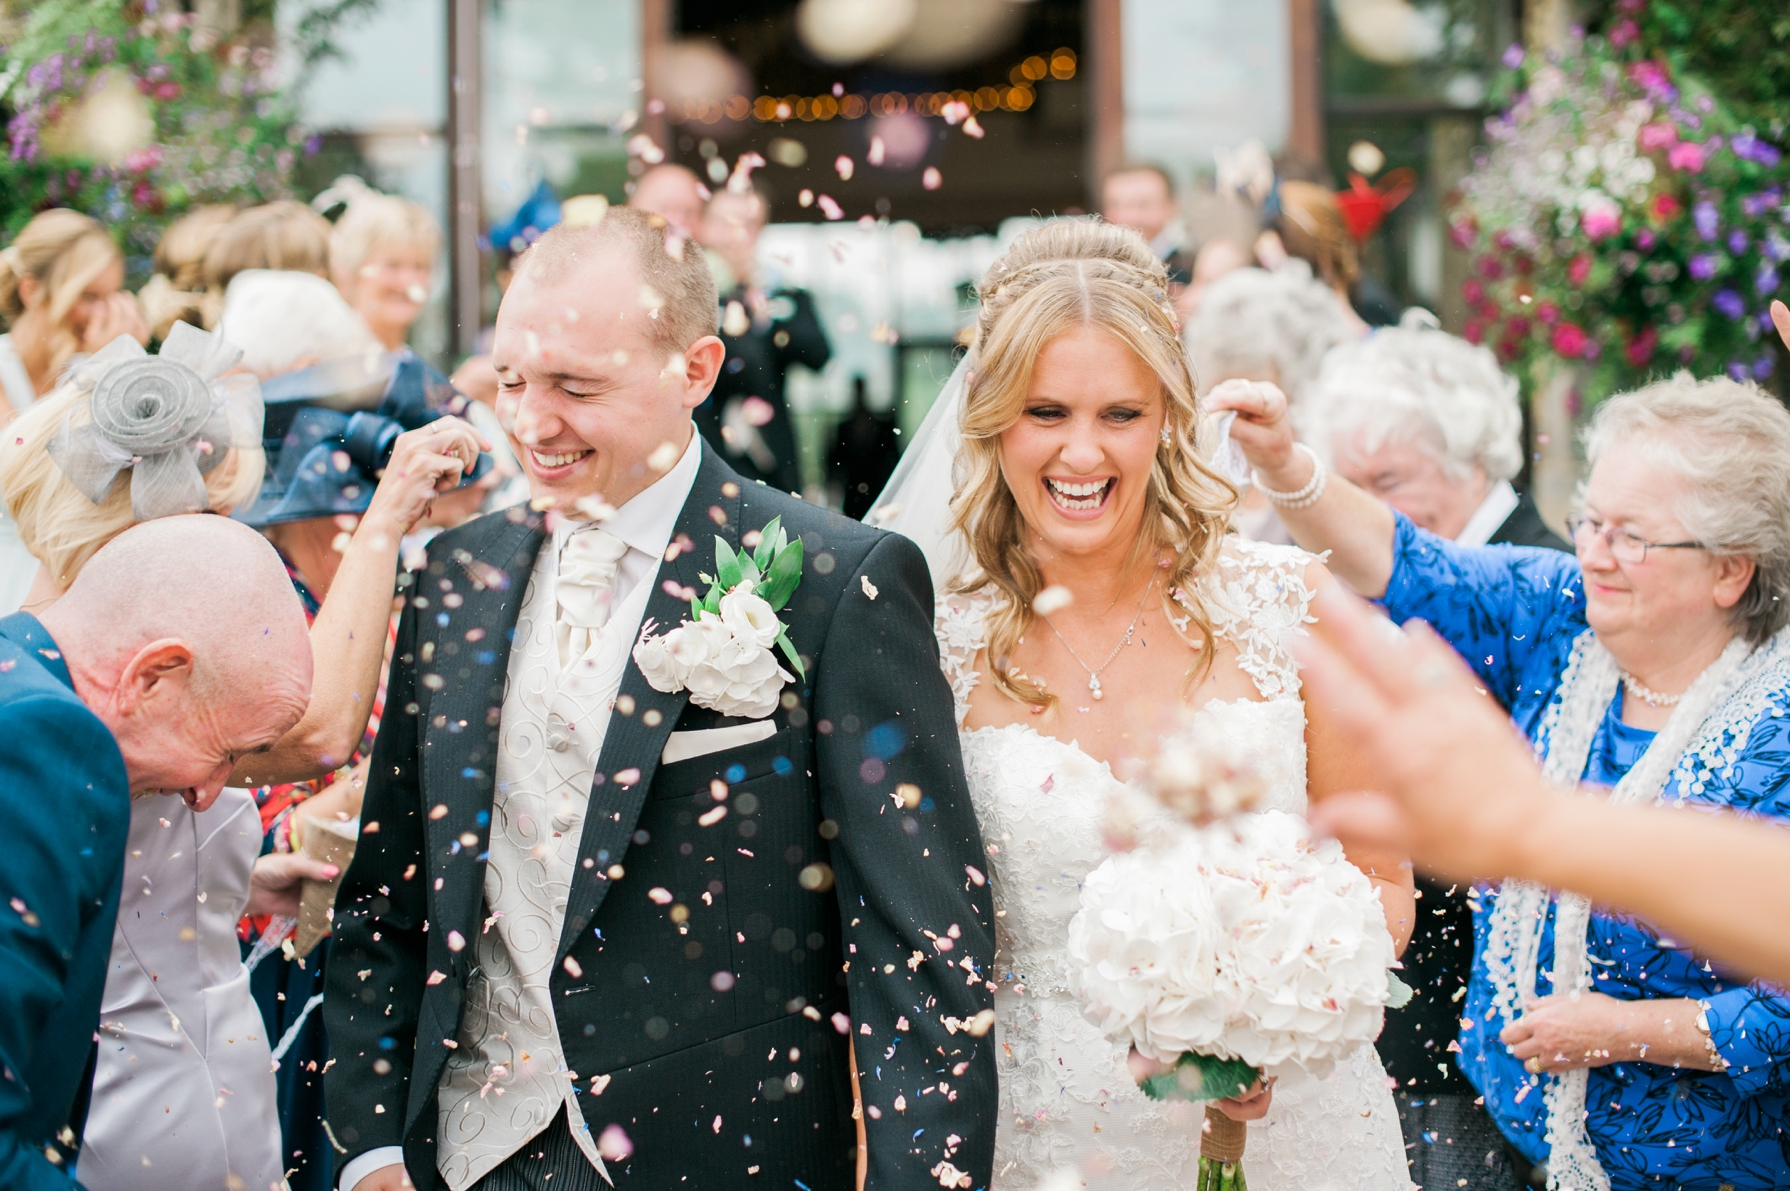 Bride and groom walking as guests throw confetti over them